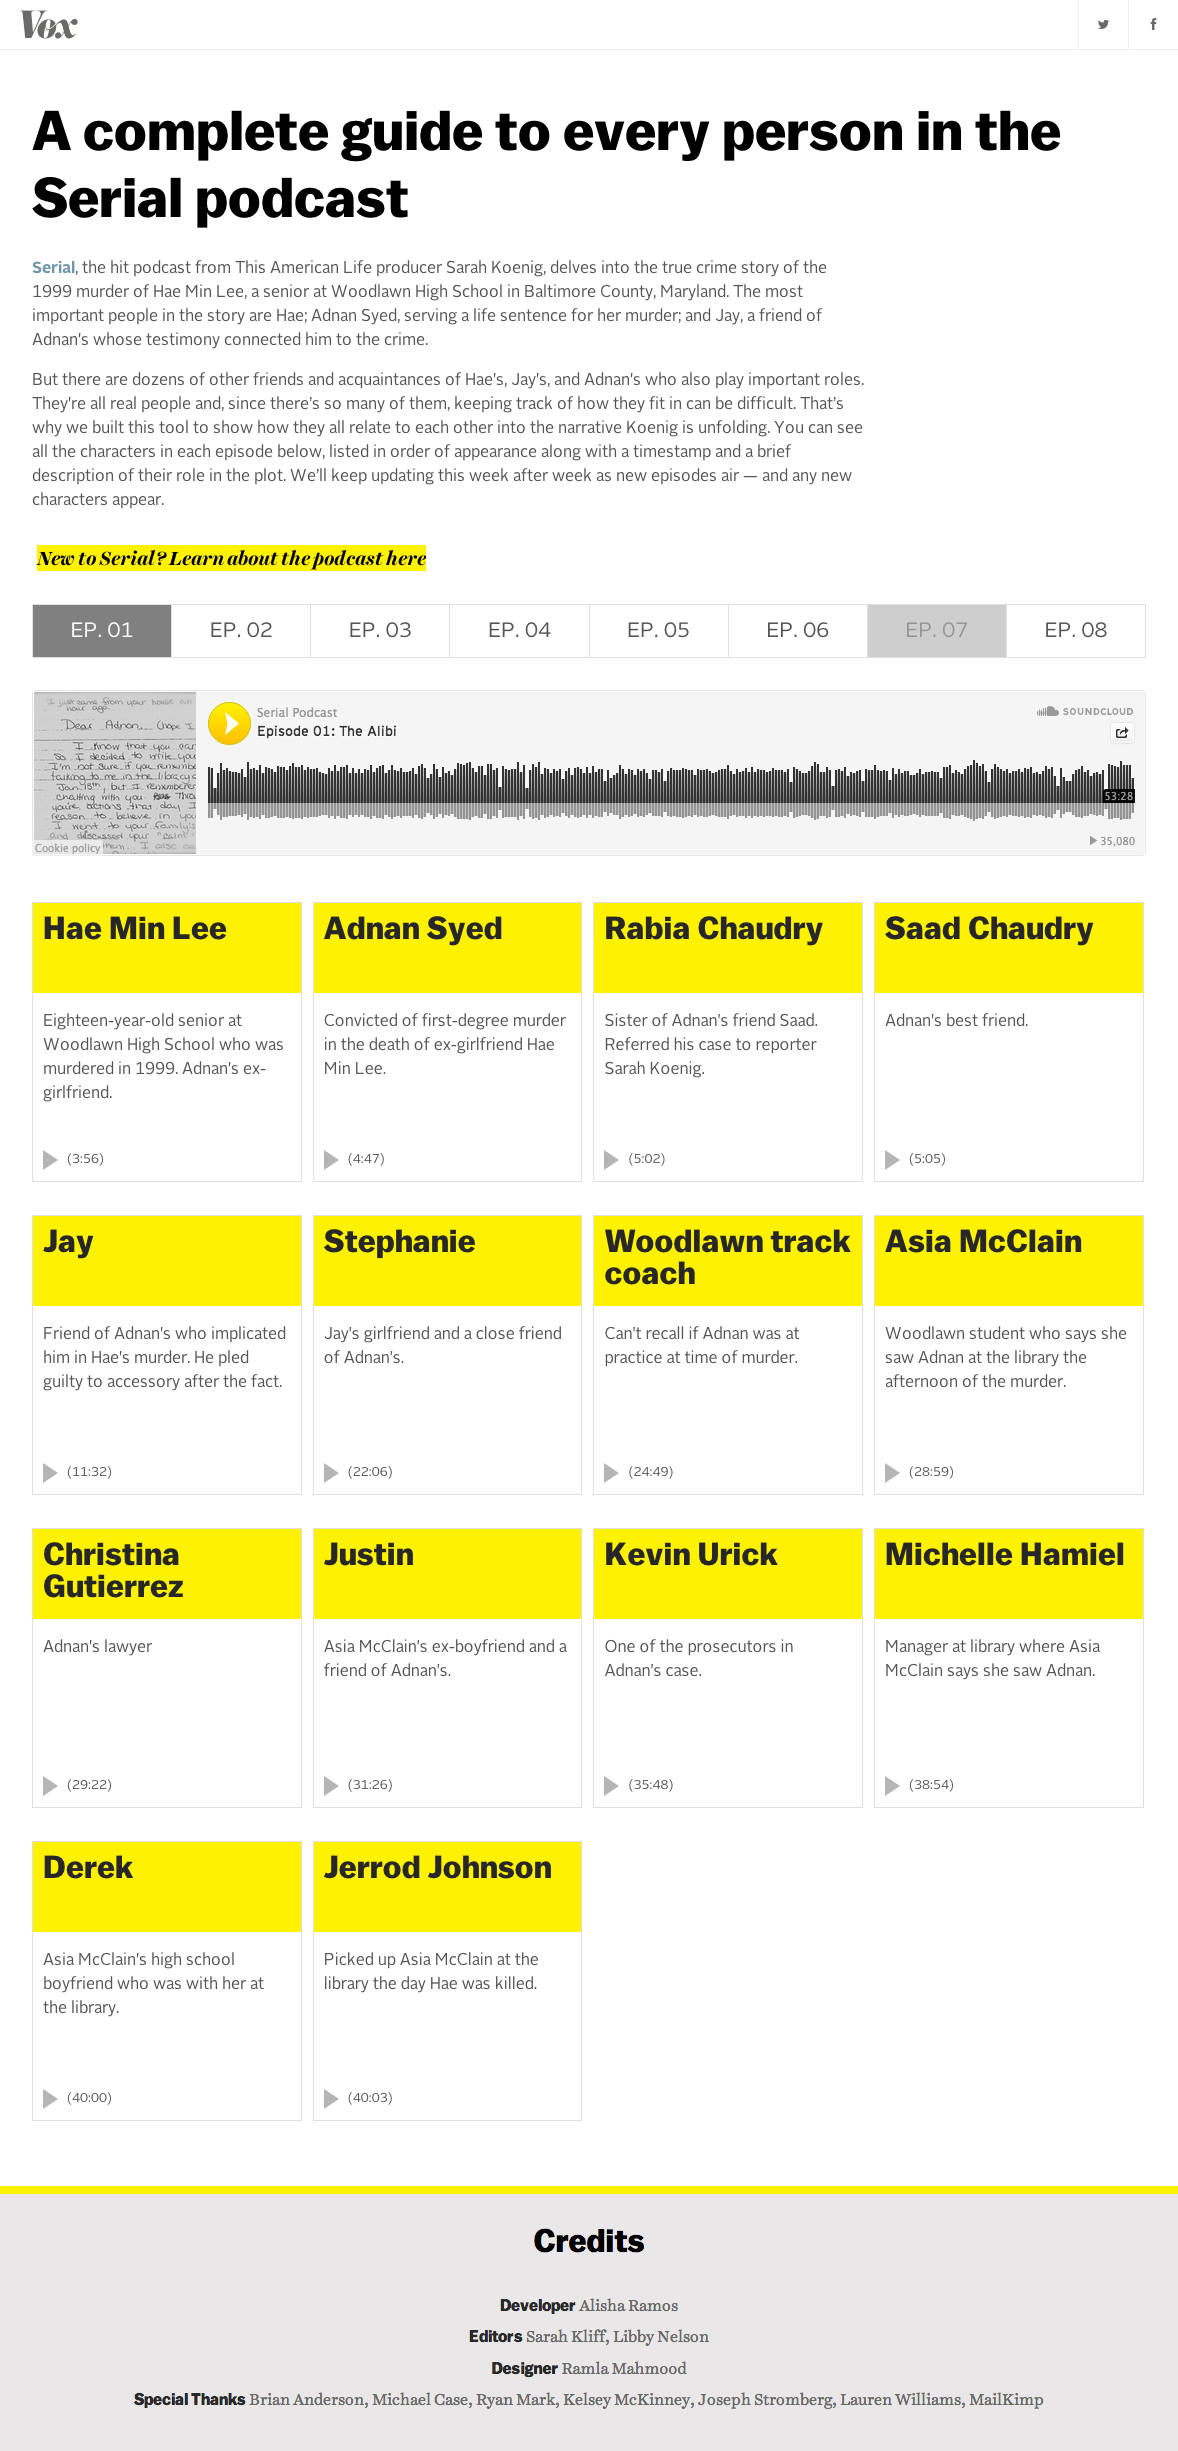 Serial Podcast Character Guide Vox